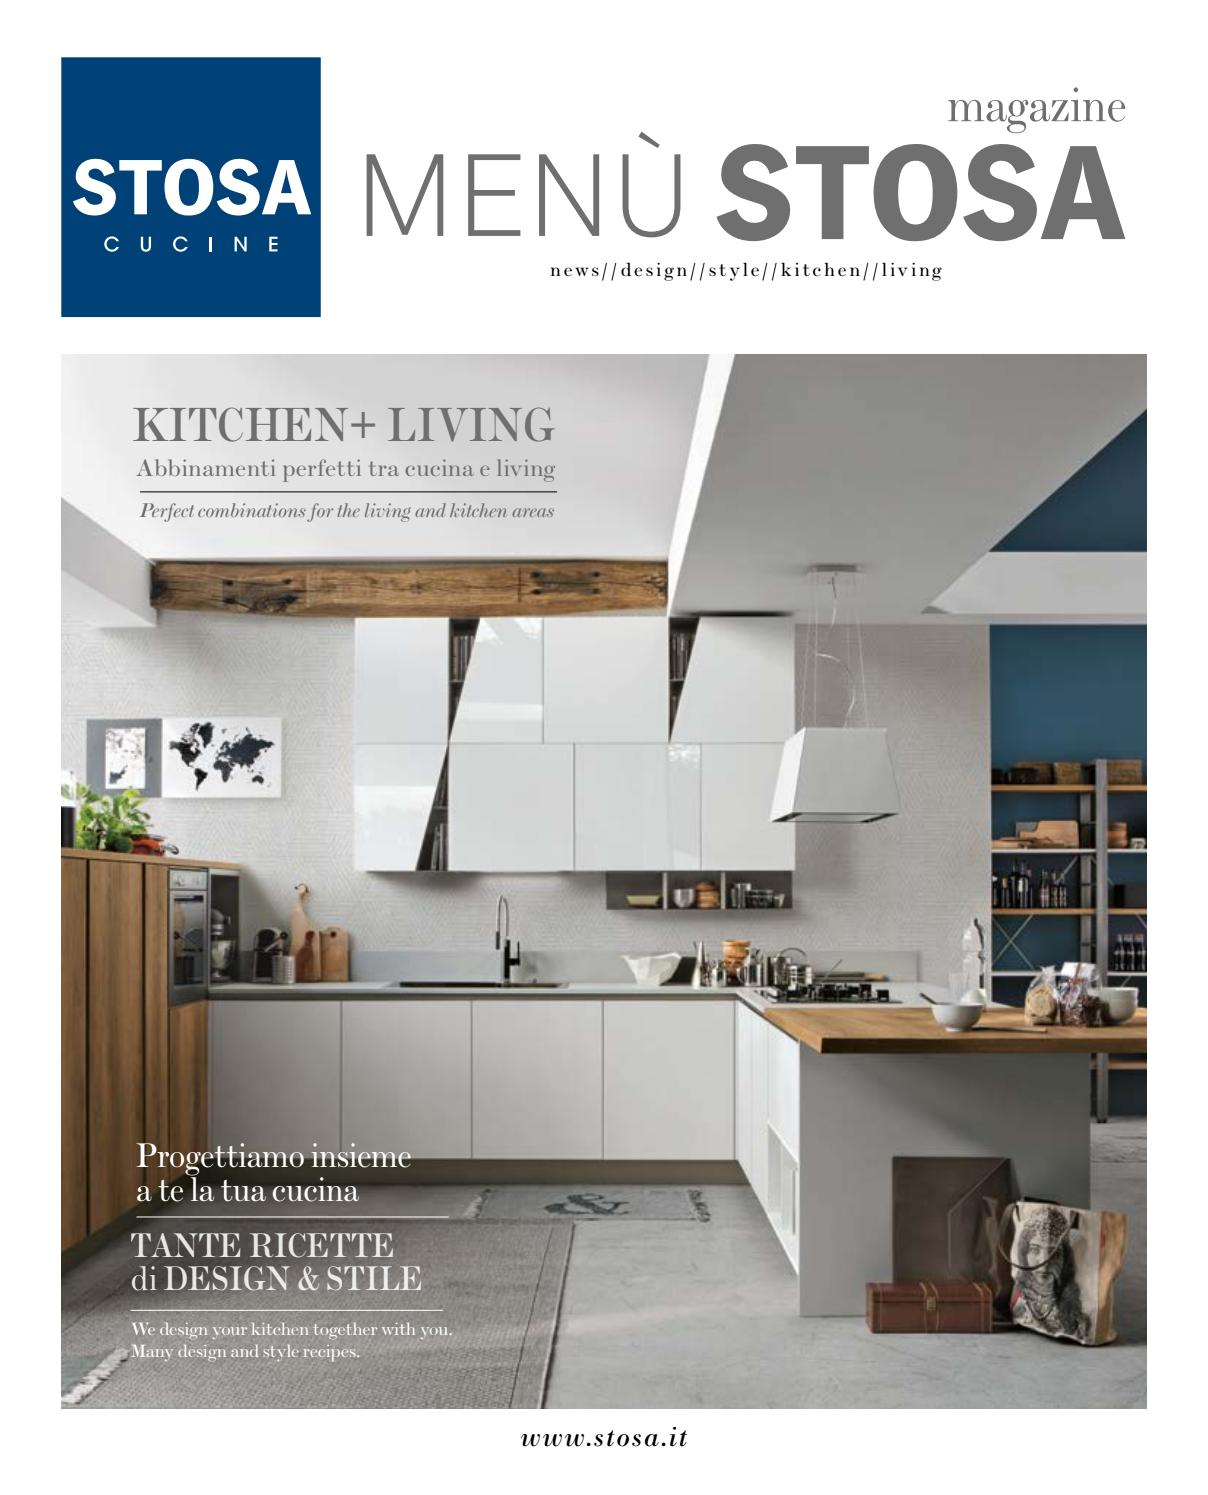 Cucina Stosa Effetto Cemento Menù Stosa 2017 By Stosa Cucine Issuu